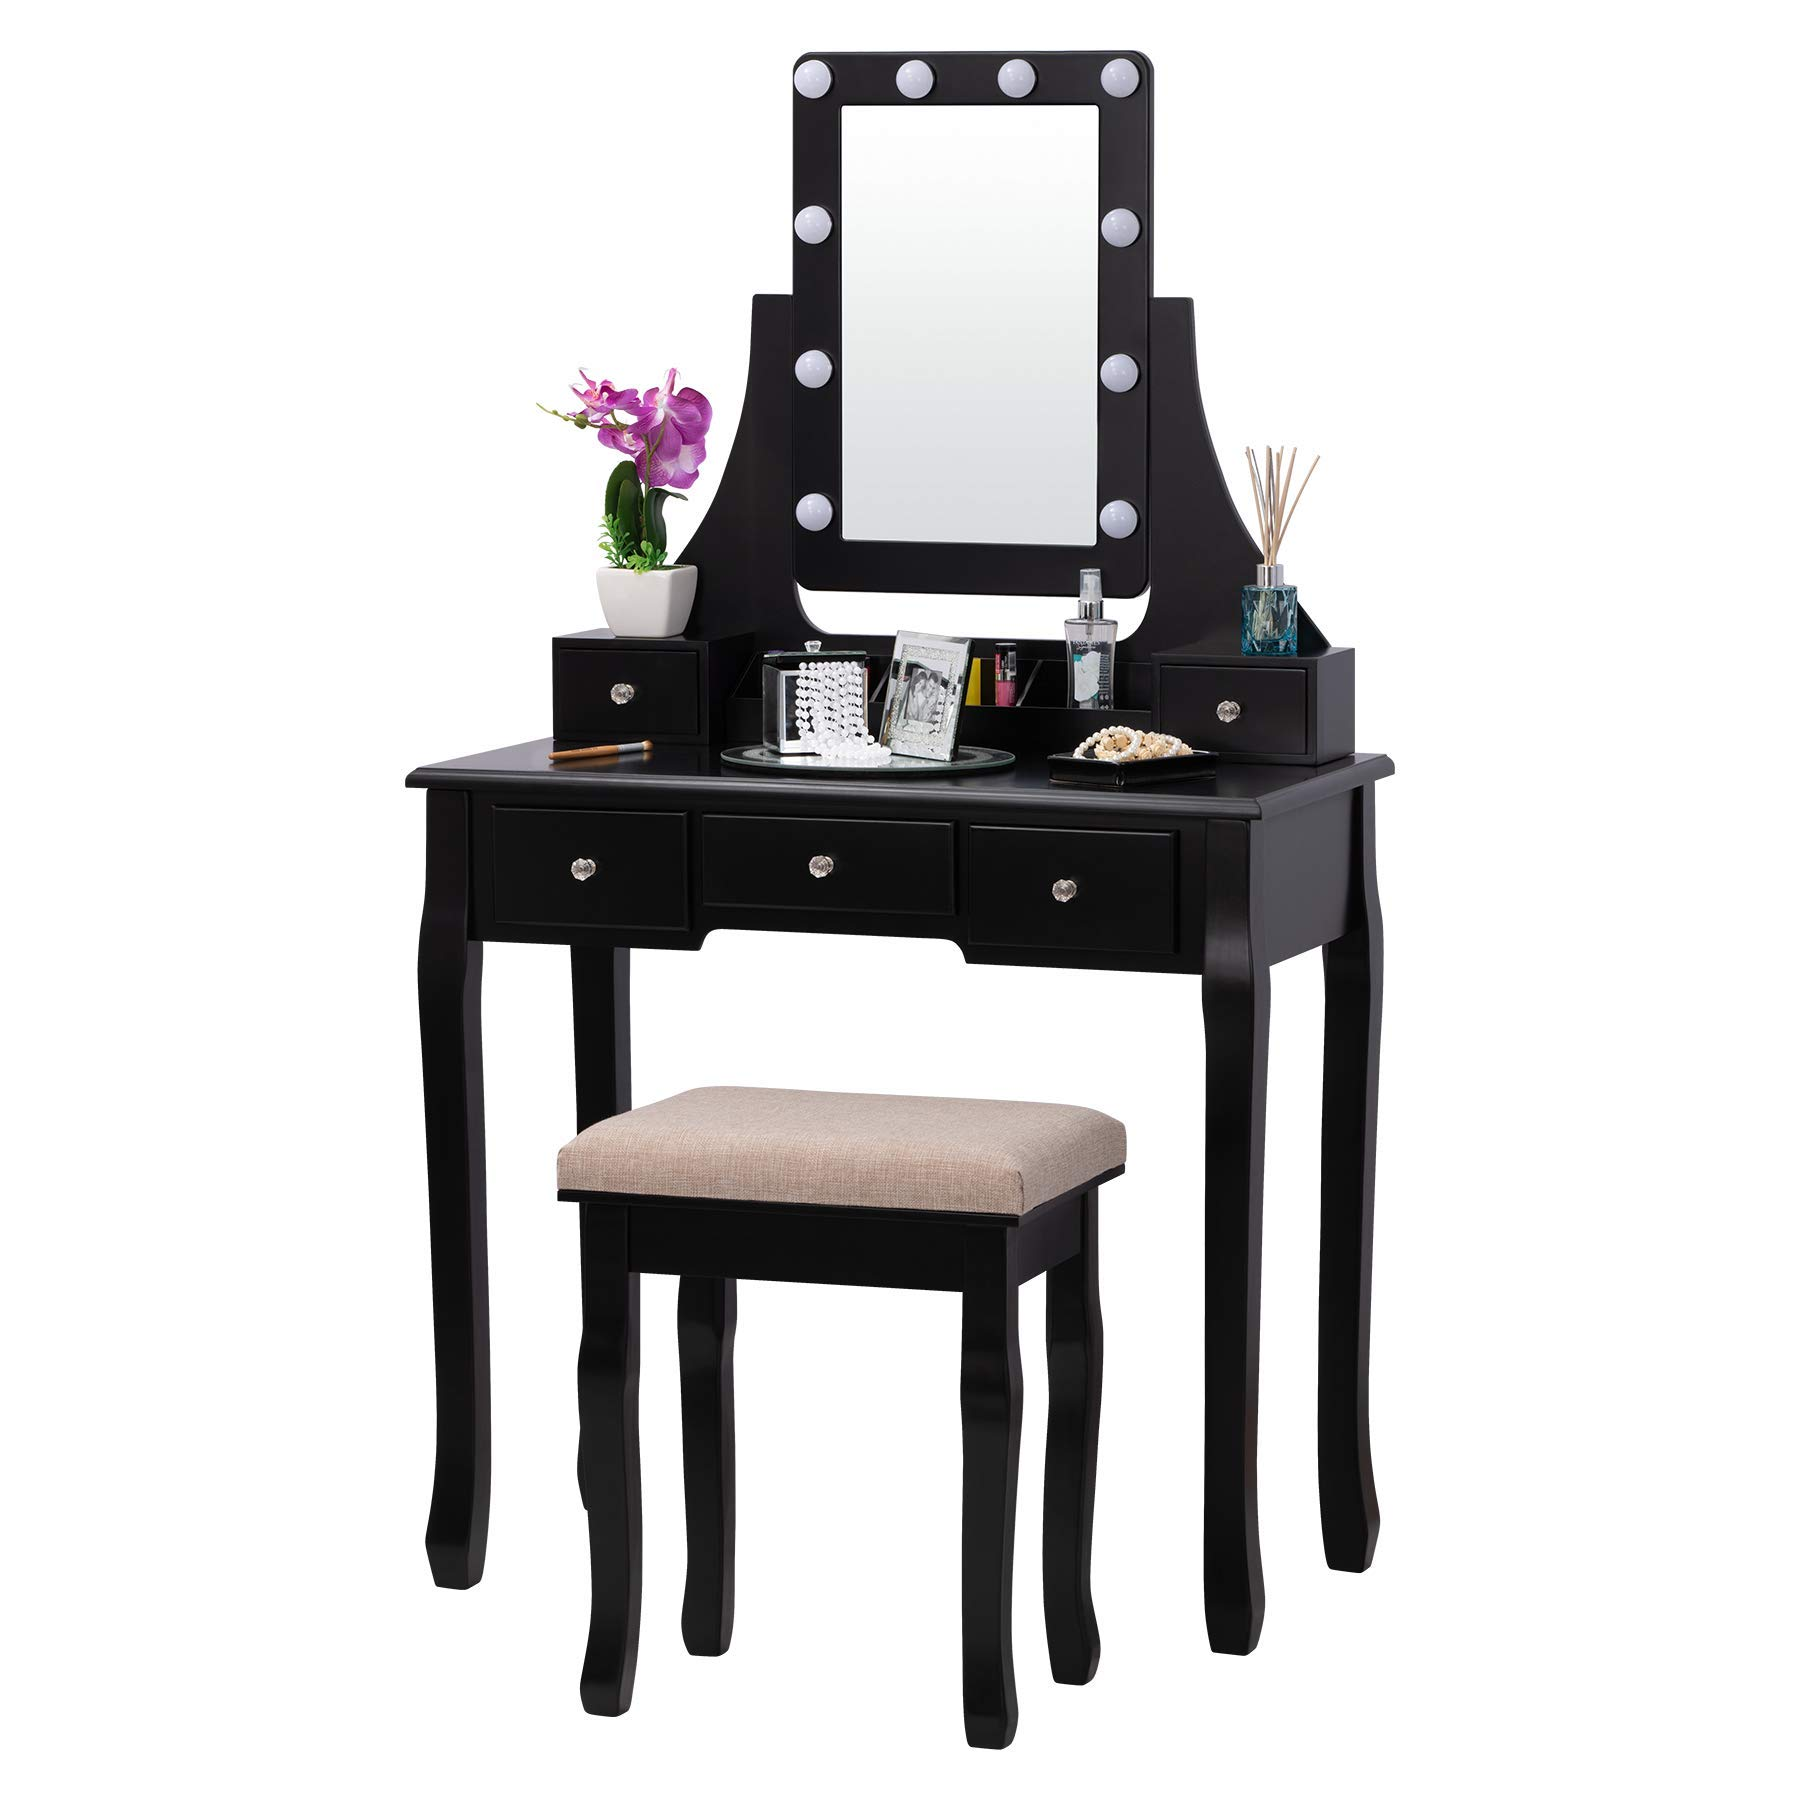 Fineboard FB-VT32-BK LED Lights Vanity Table Set with Stool and Mirror with 5 Drawers, Black